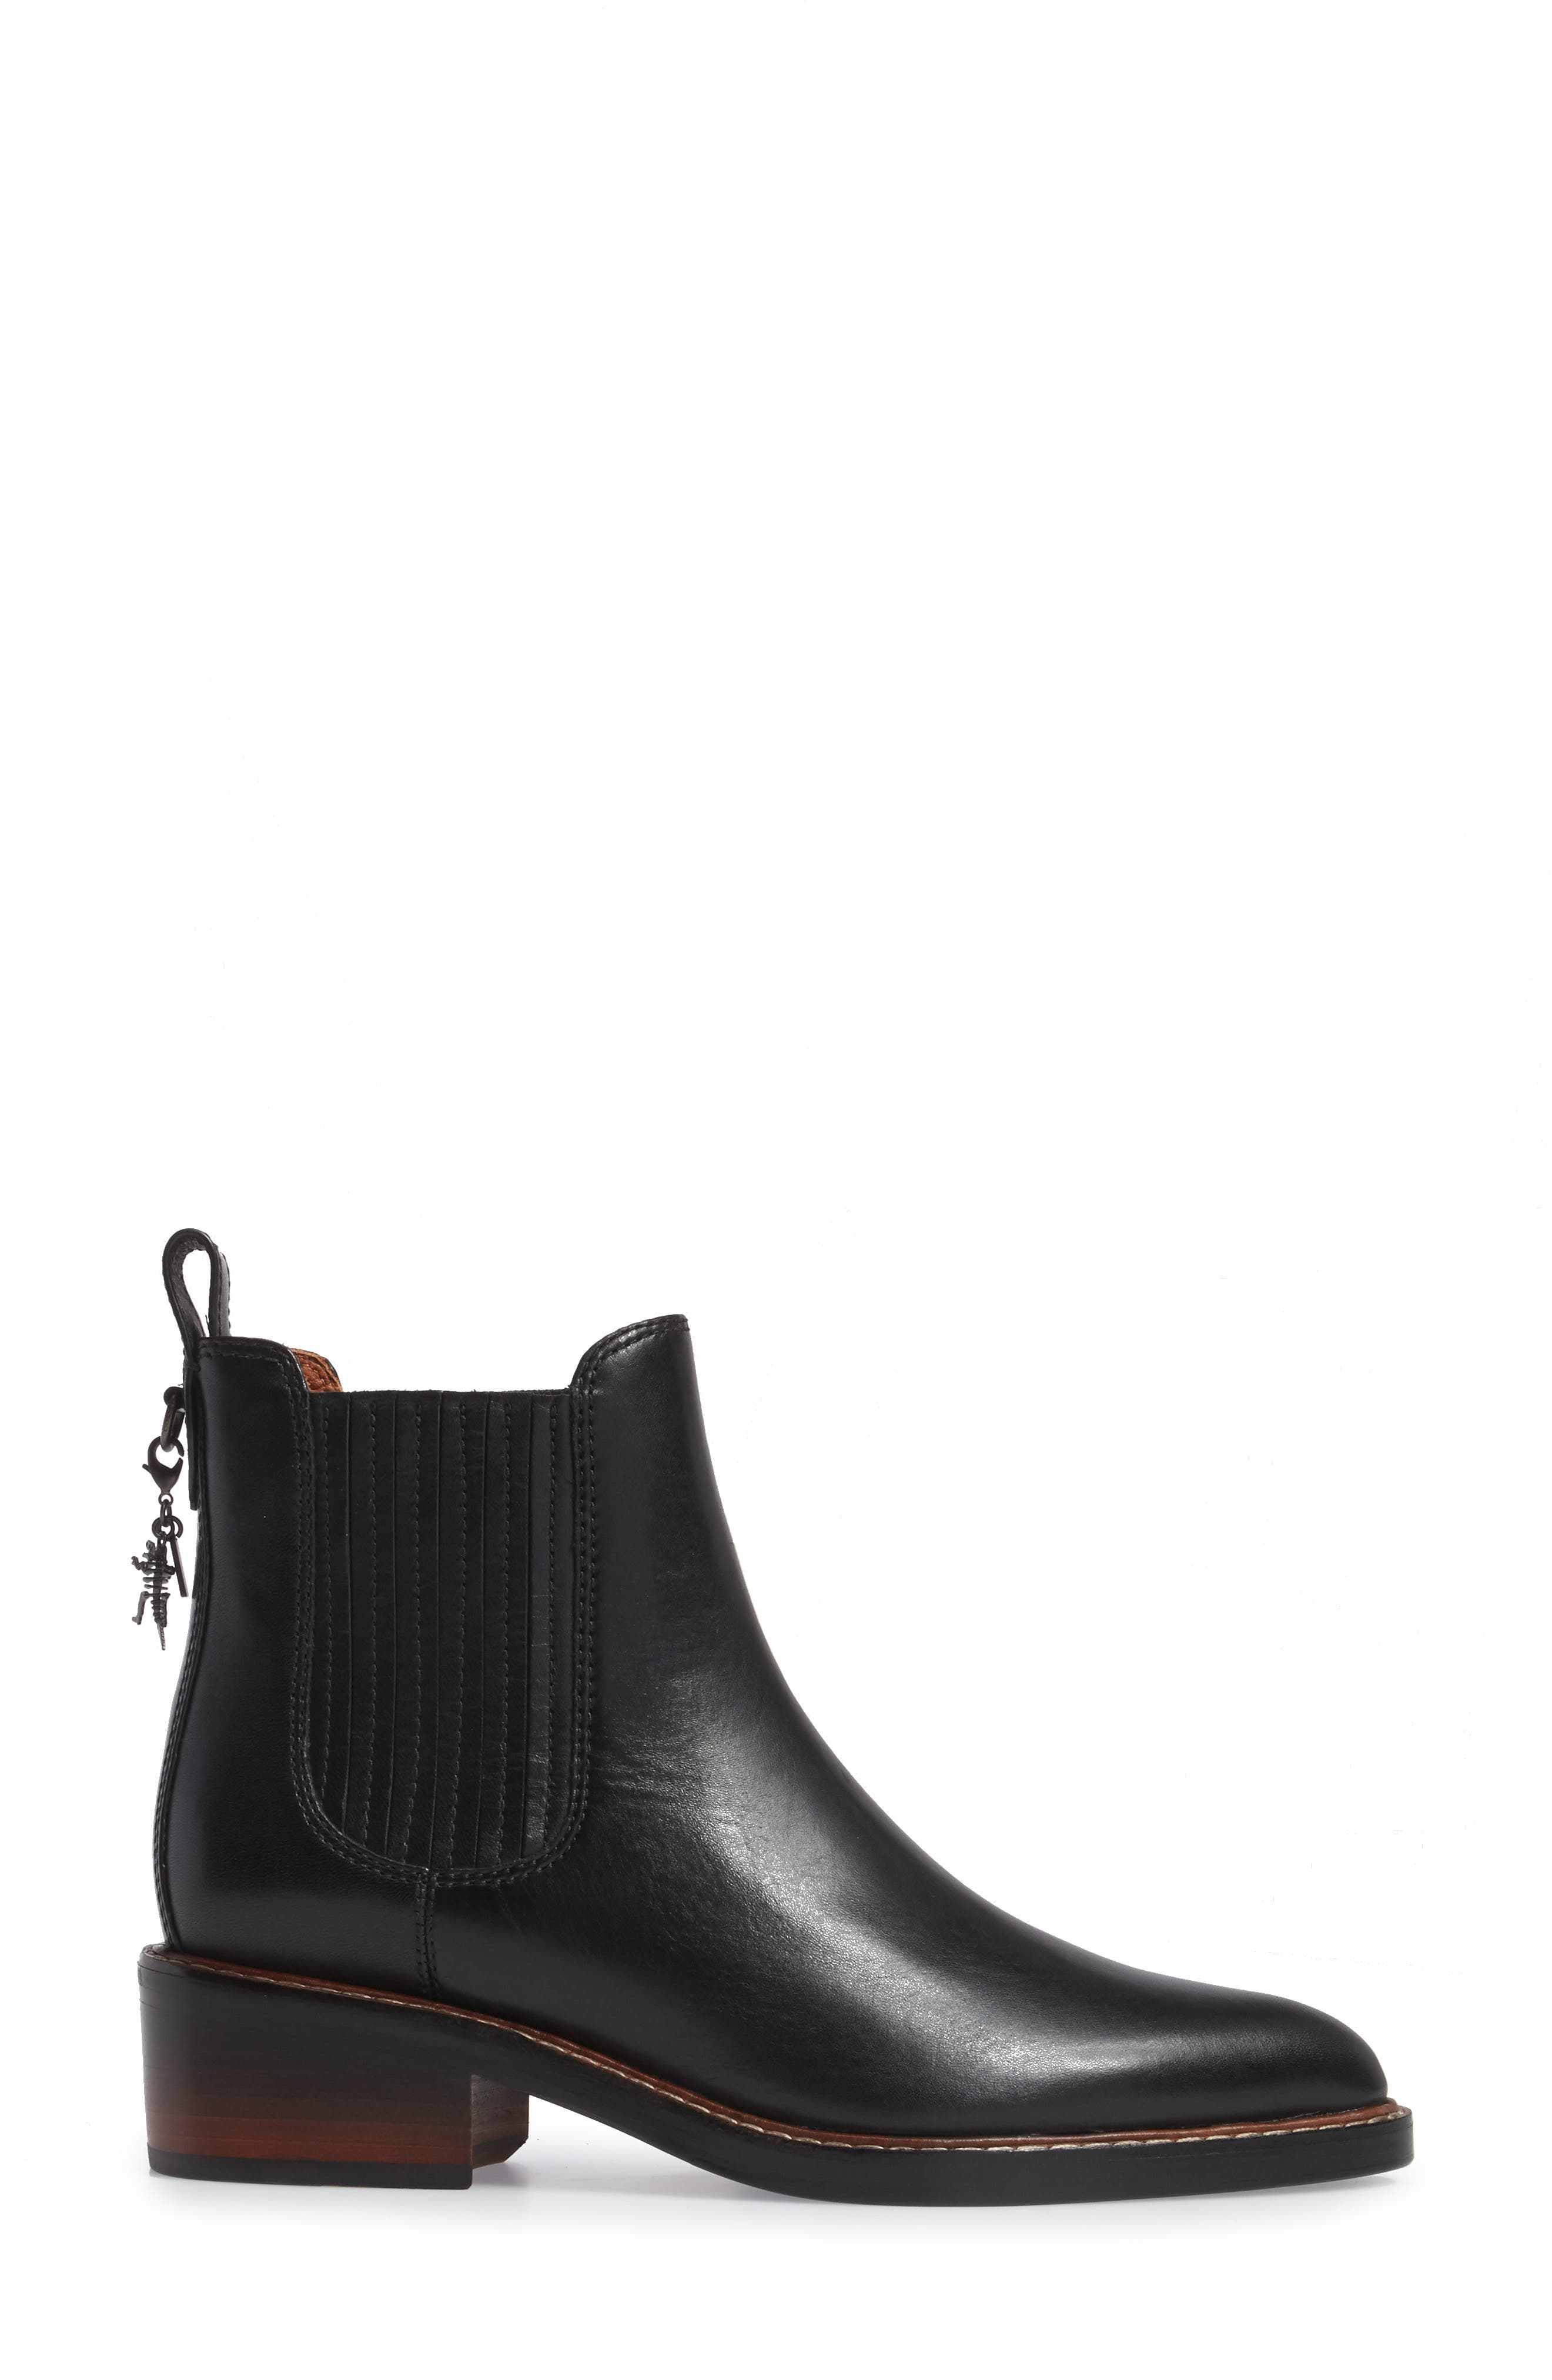 Bowery Embroidered Chelsea Bootie,                             Alternate thumbnail 3, color,                             Black Leather